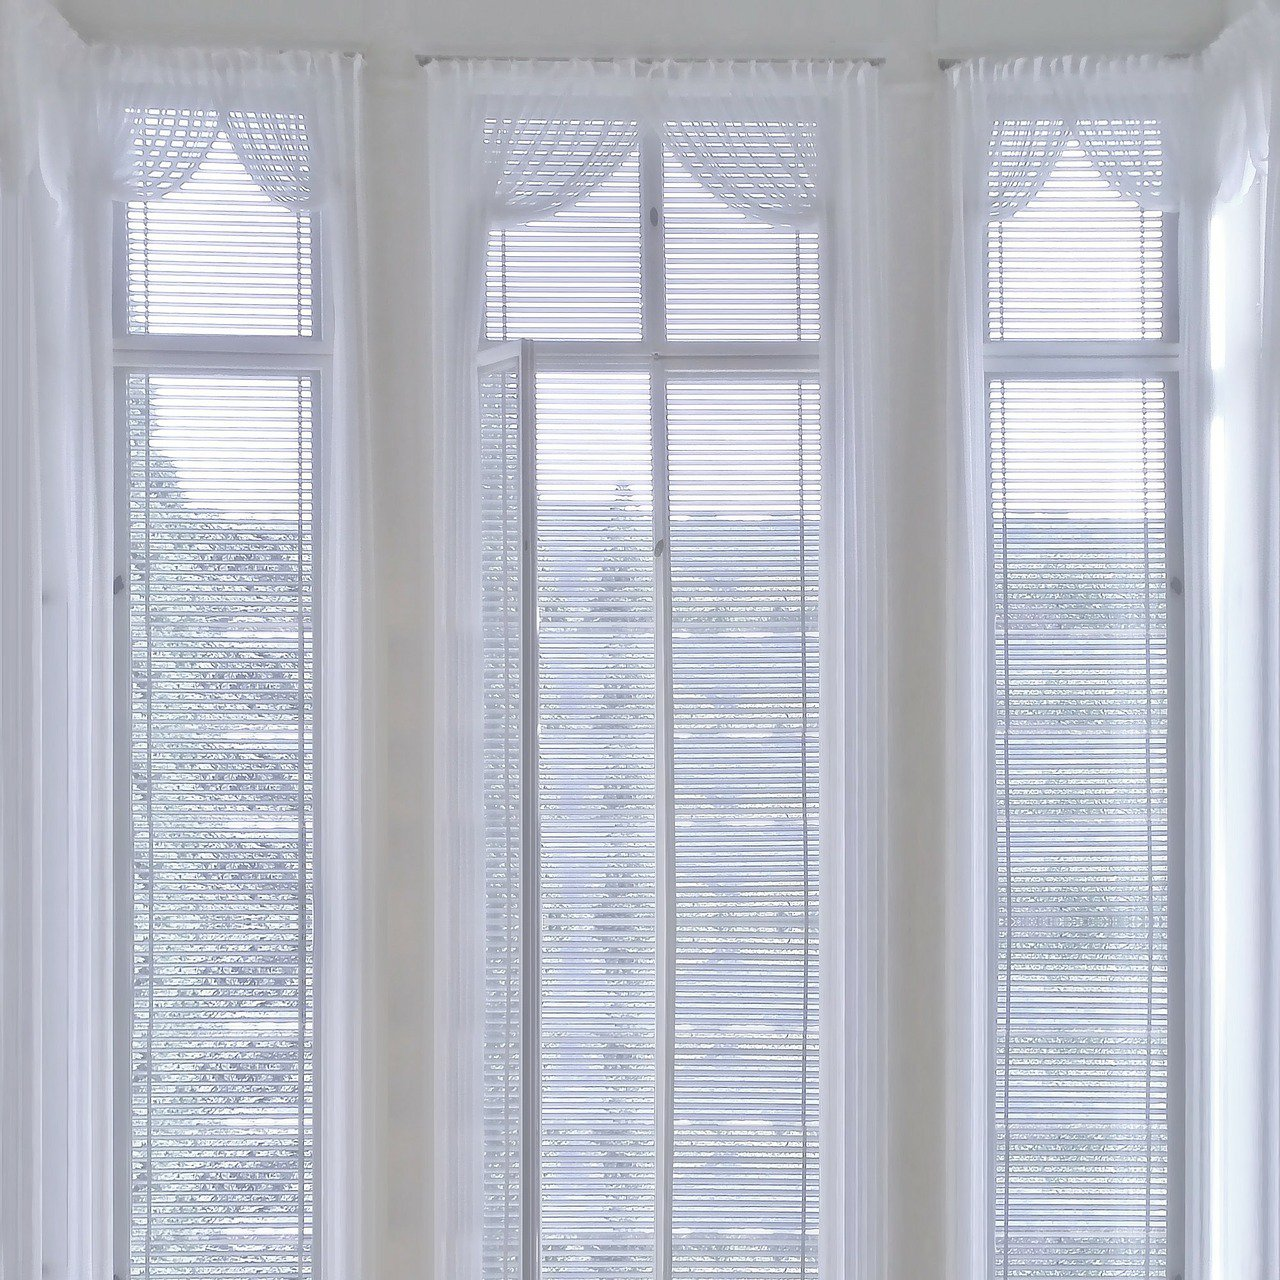 What are the Easiest Window Treatments to Clean?